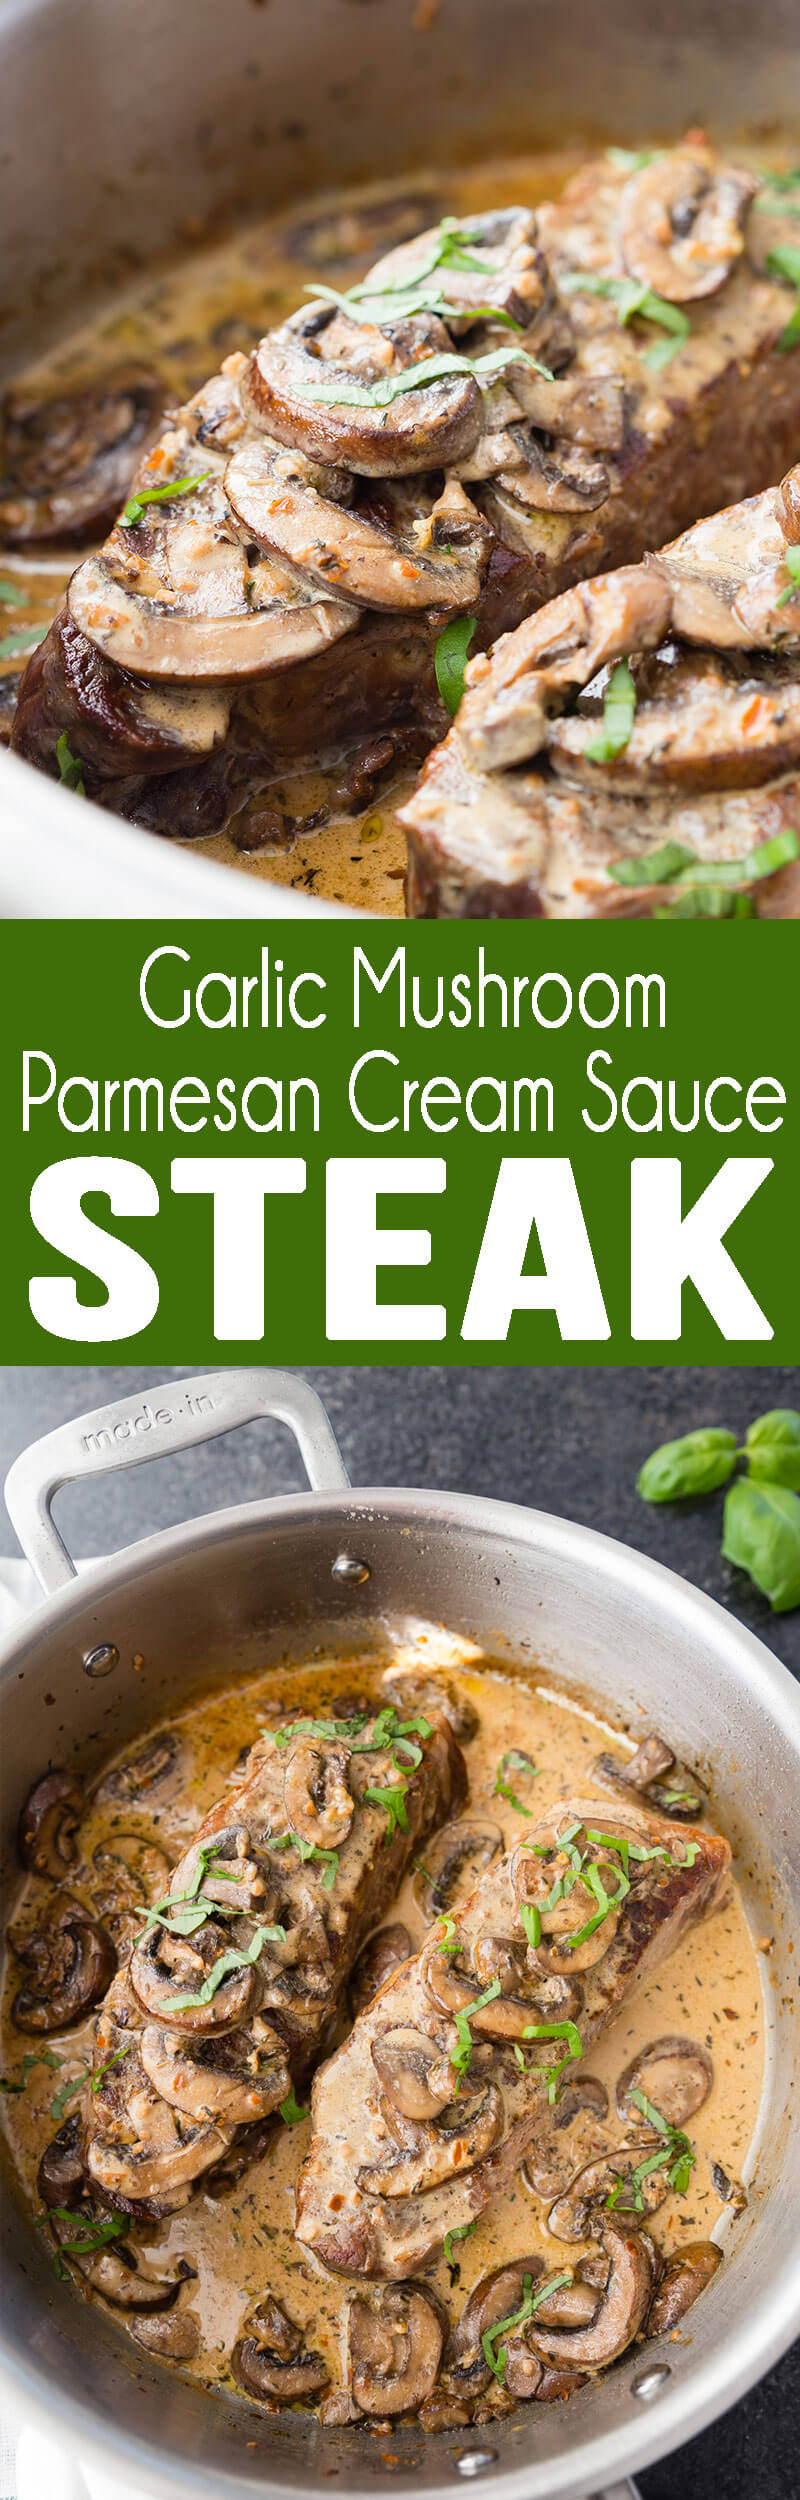 Garlic Parmesan Mushroom Cream Sauce on top of a delicious pan seared steak